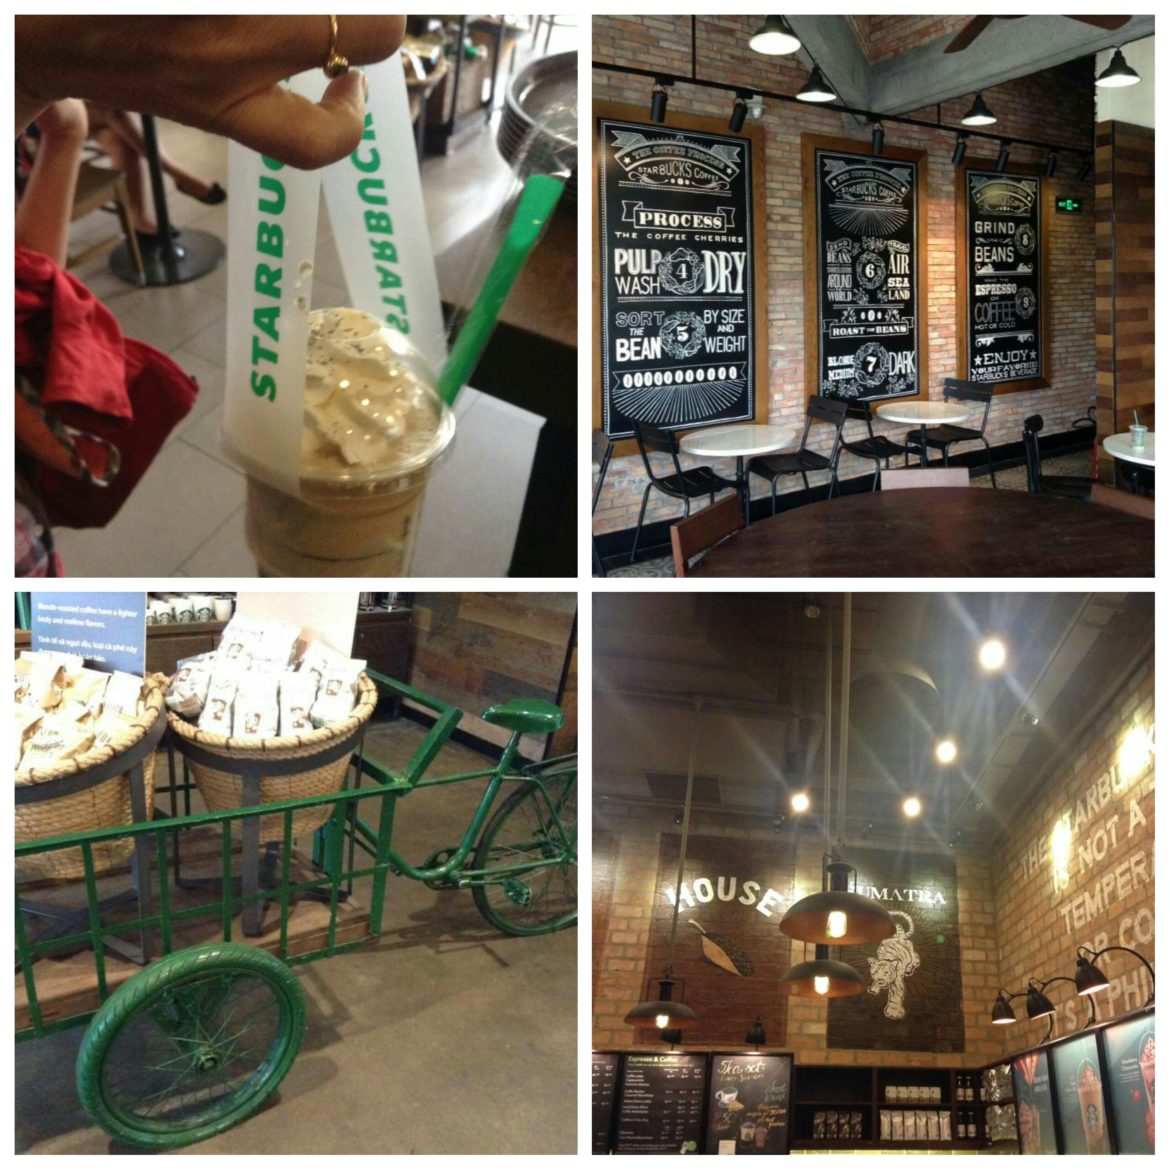 Starbucks in Vietnam. (They have Frappuccino carrier handles!)